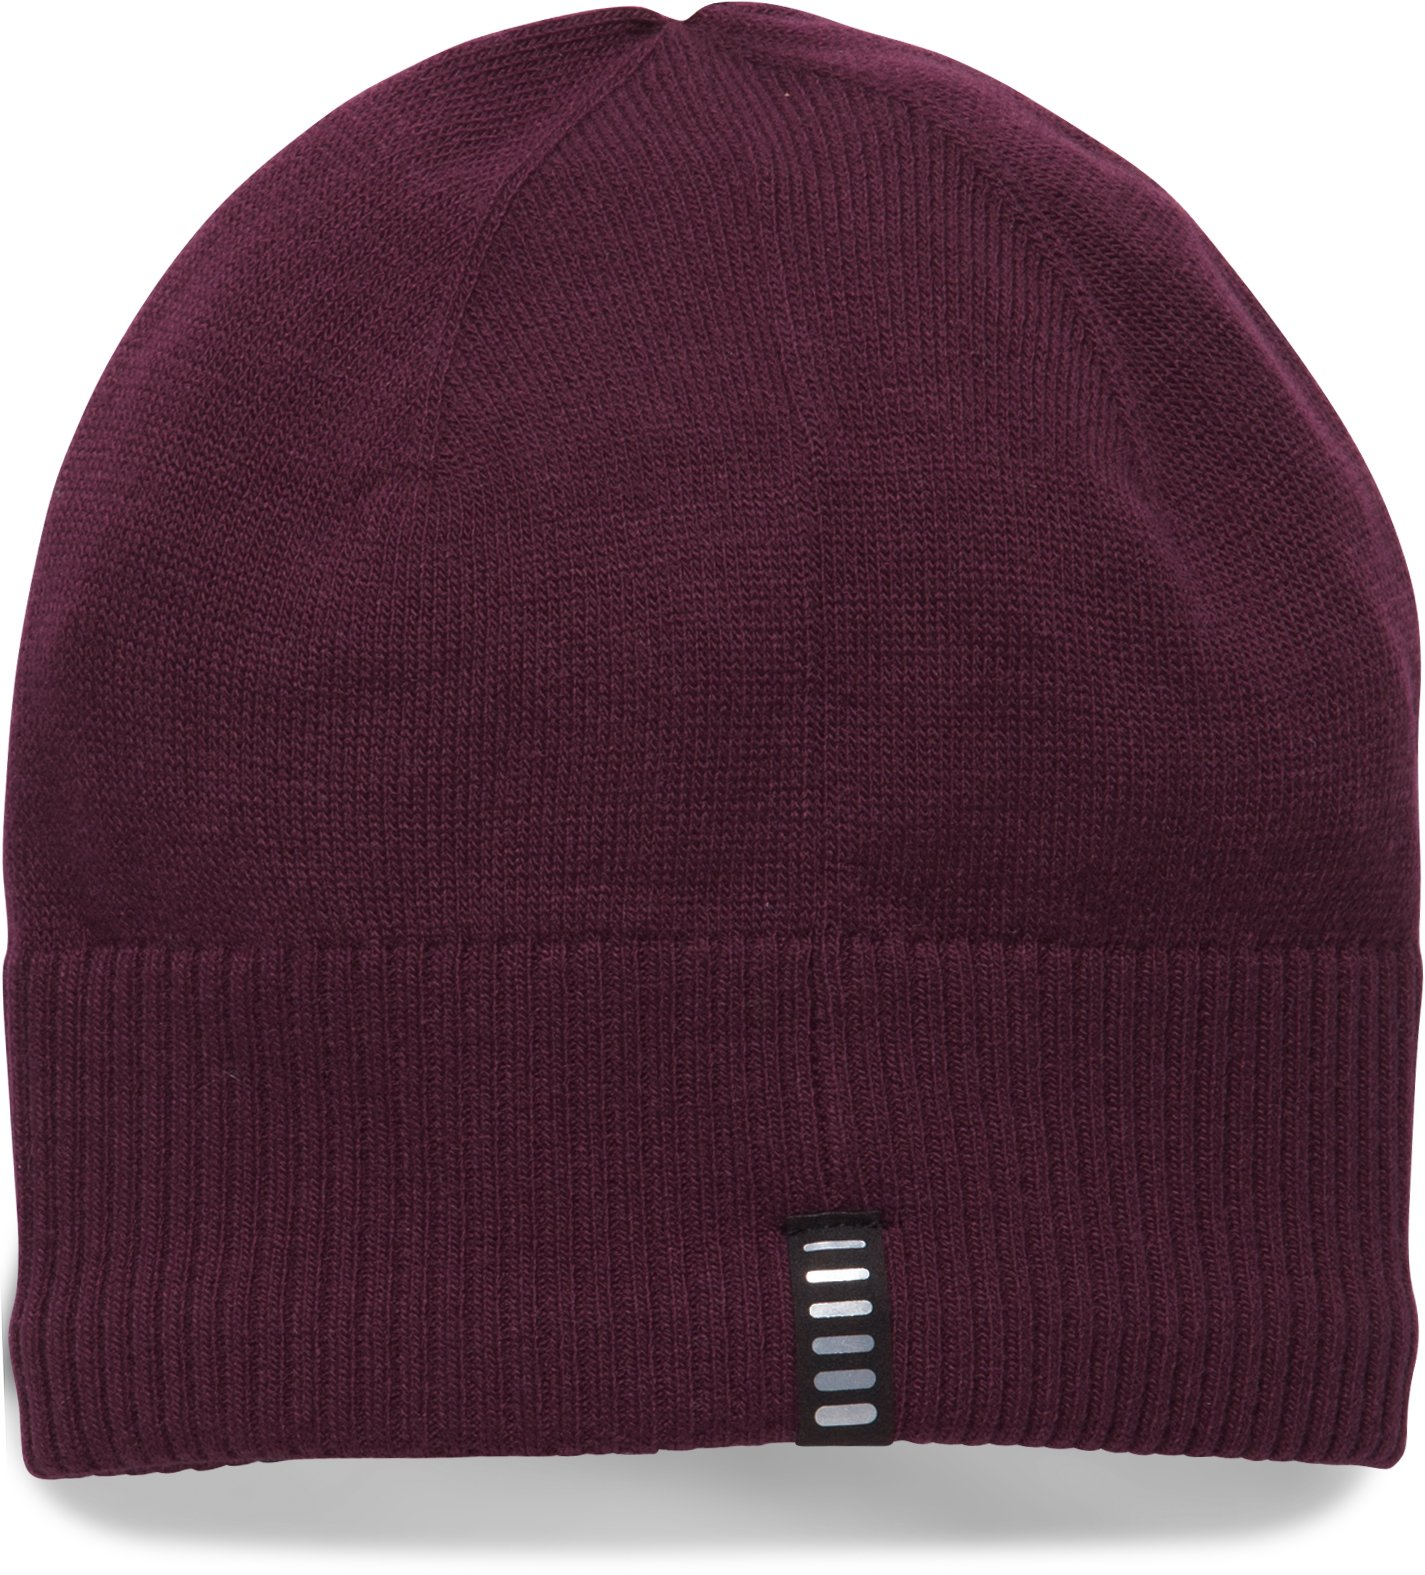 Men's ColdGear® Reactor Knit Beanie, RAISIN RED, undefined